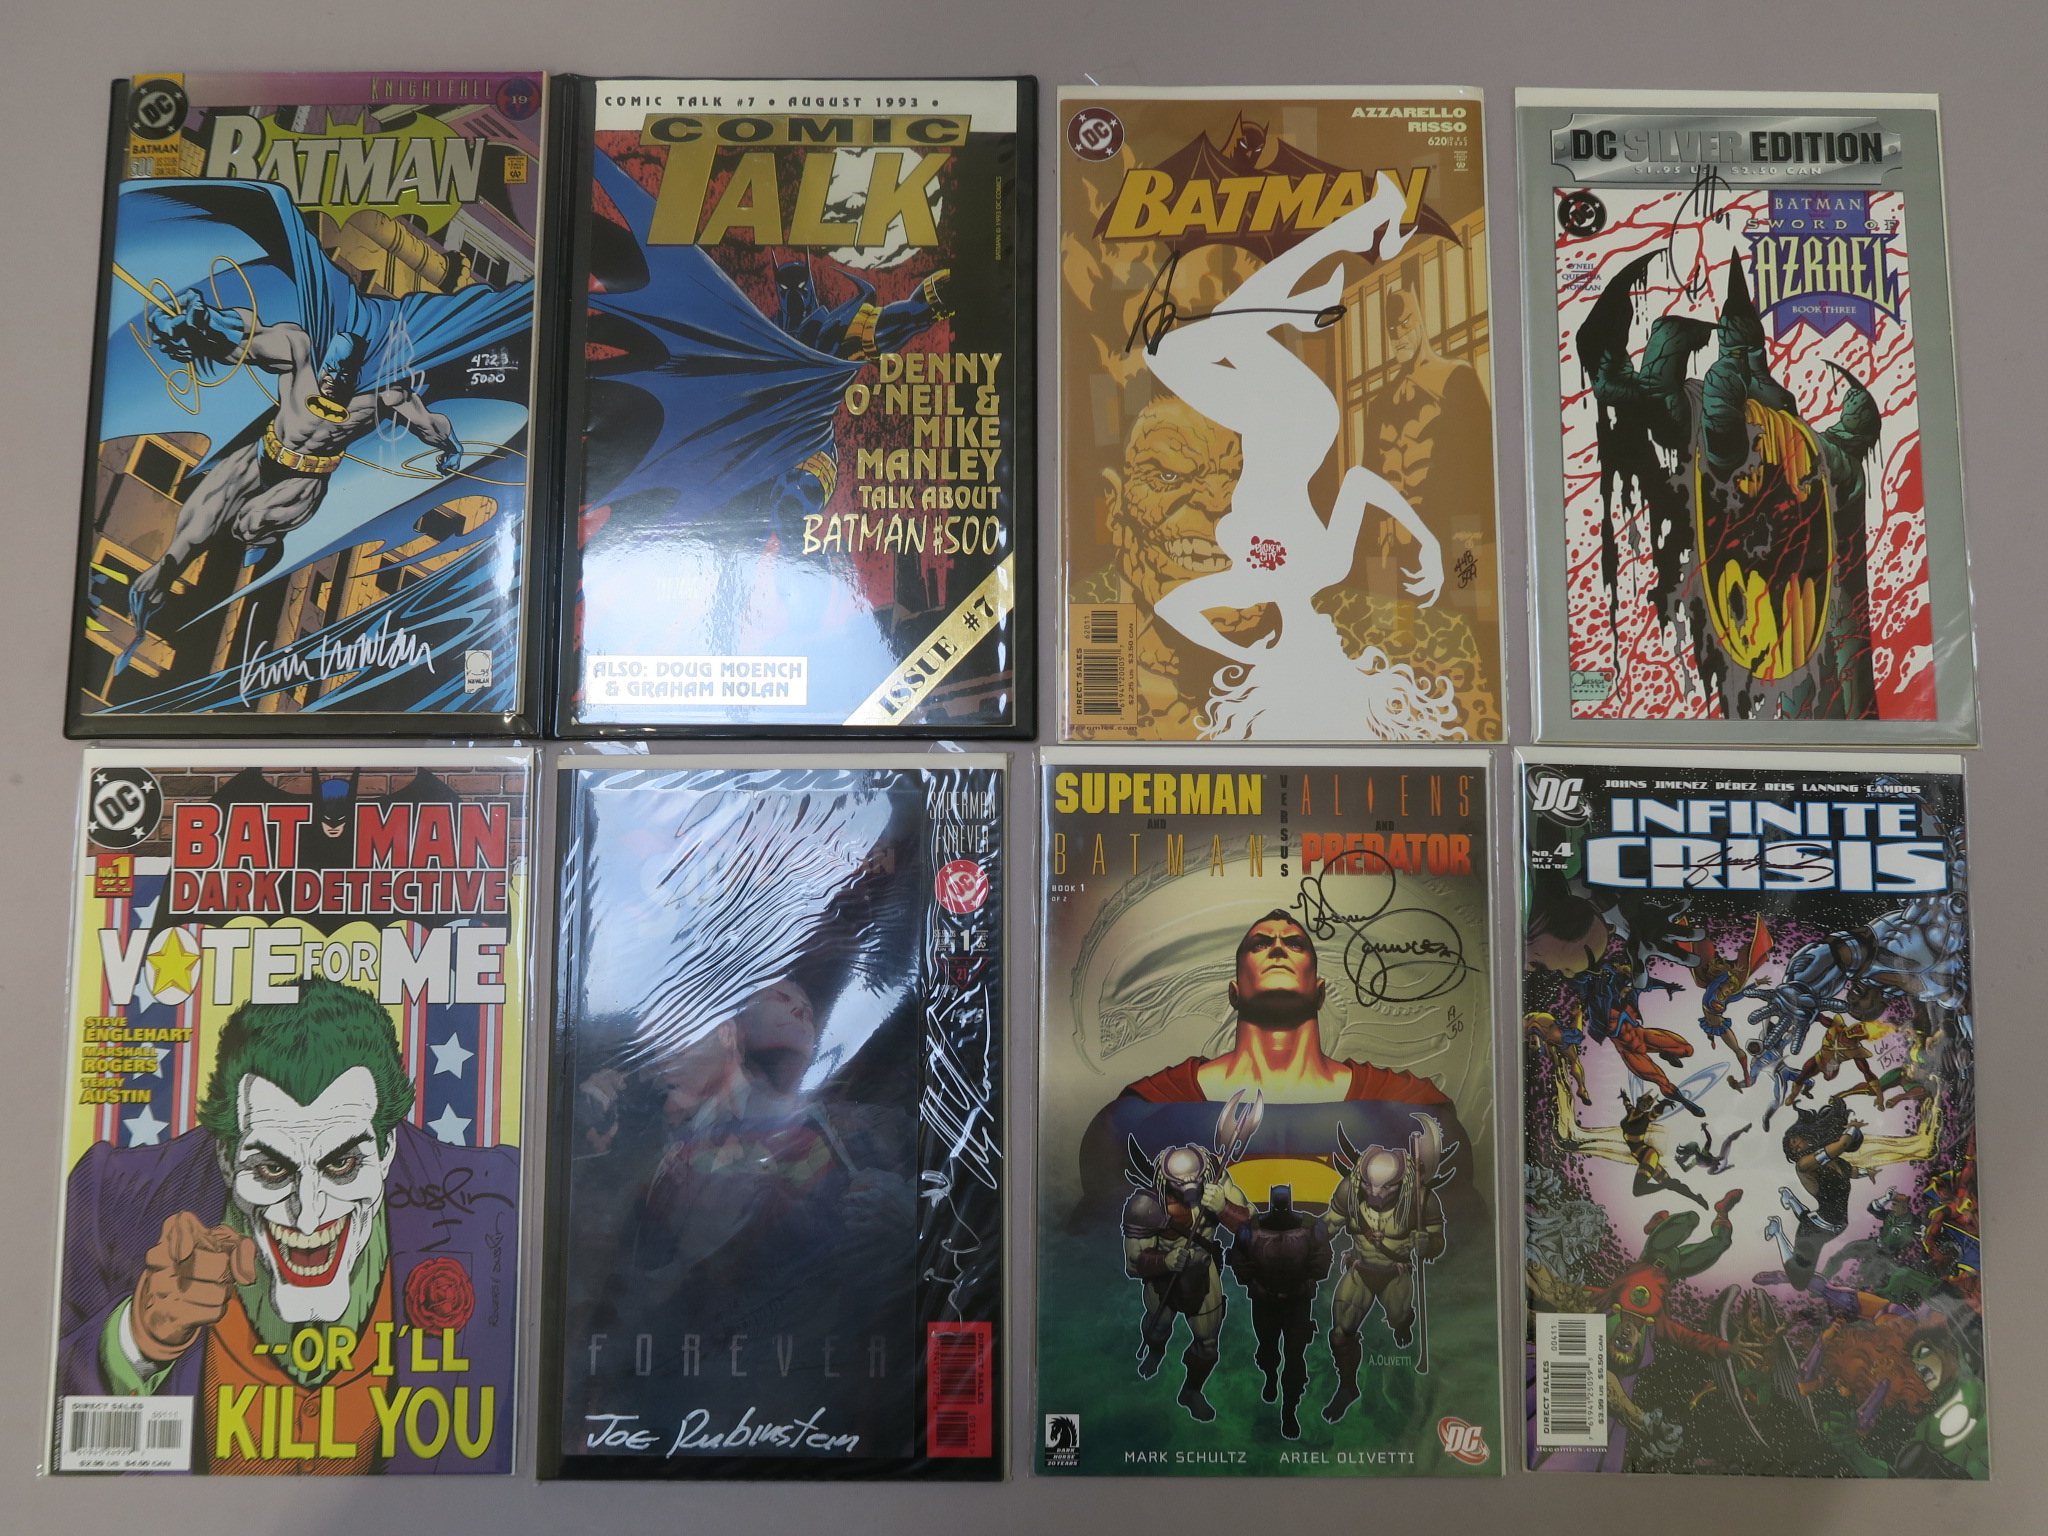 Lot 5 - Signed DC comics including Superman Forever #1 signed by Alex Ross and Joe Rubinstein with sketch (